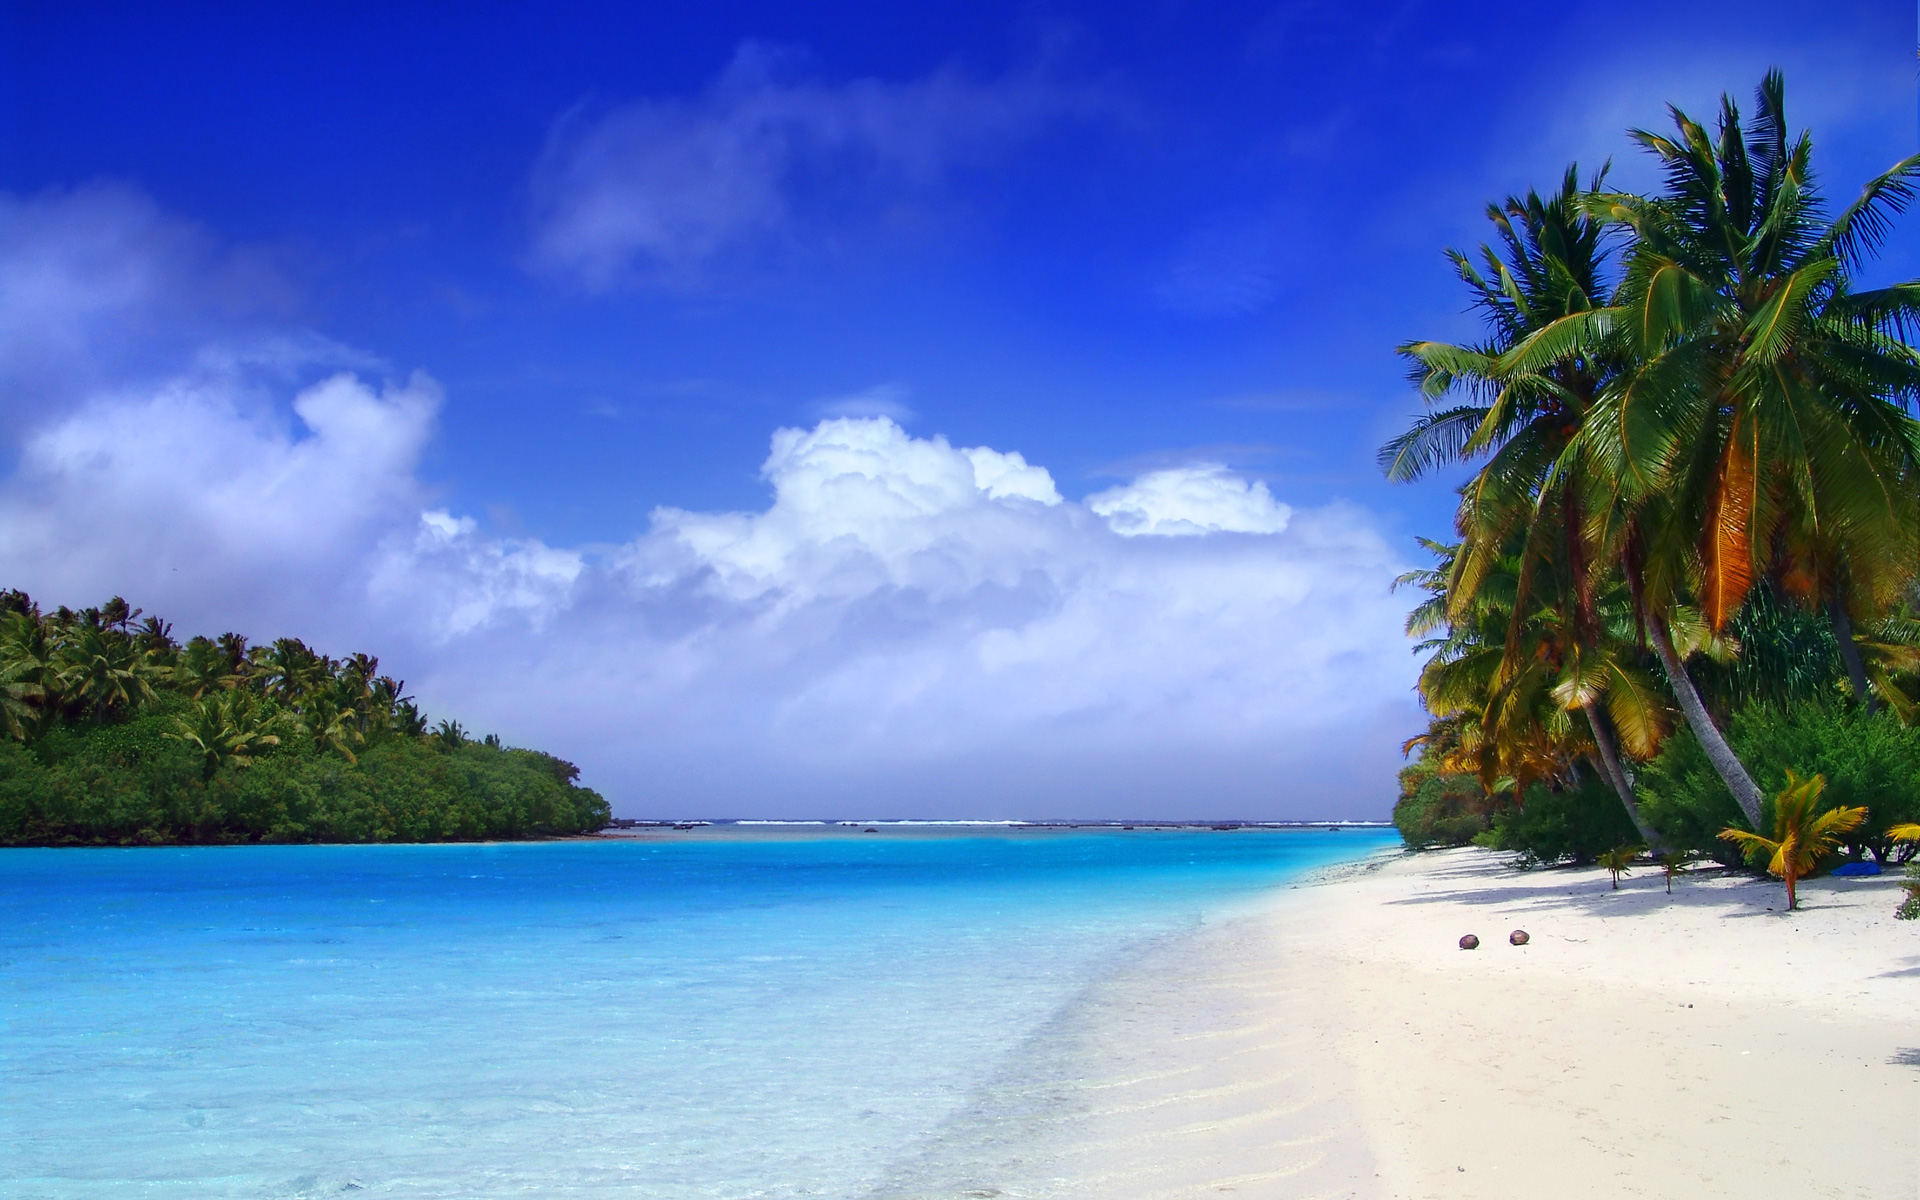 Paradise beach wallpaper - Beach Wallpapers